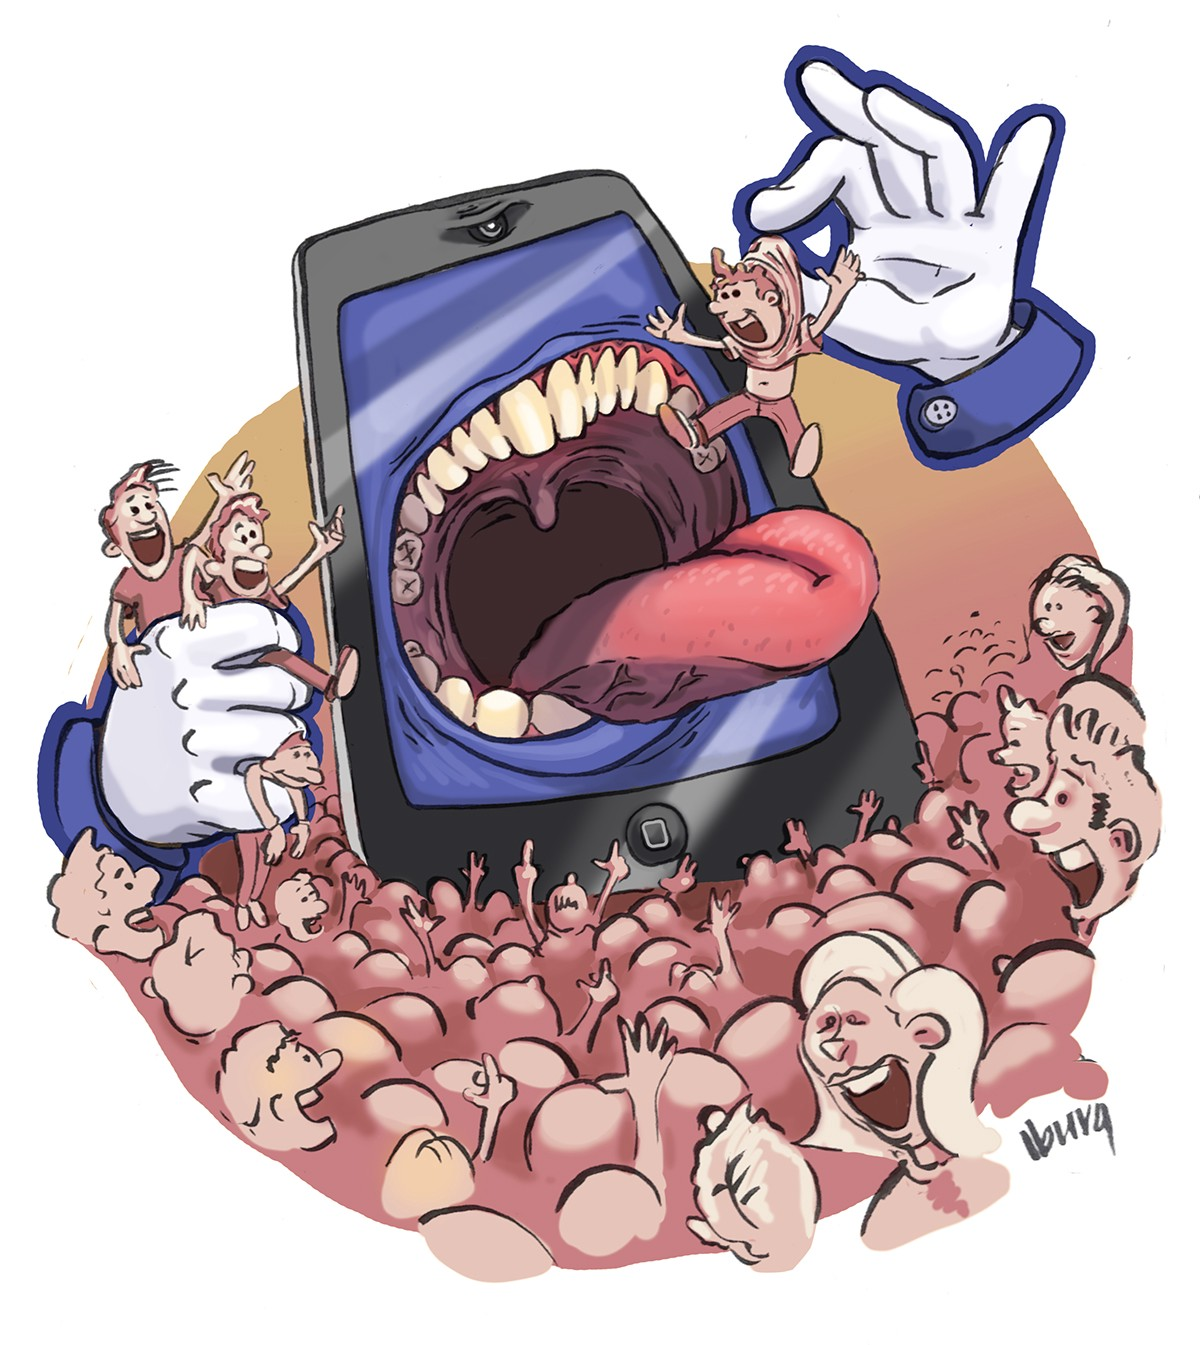 Large mobile phone with blue app background, devouring enthusastic people from a crowd.